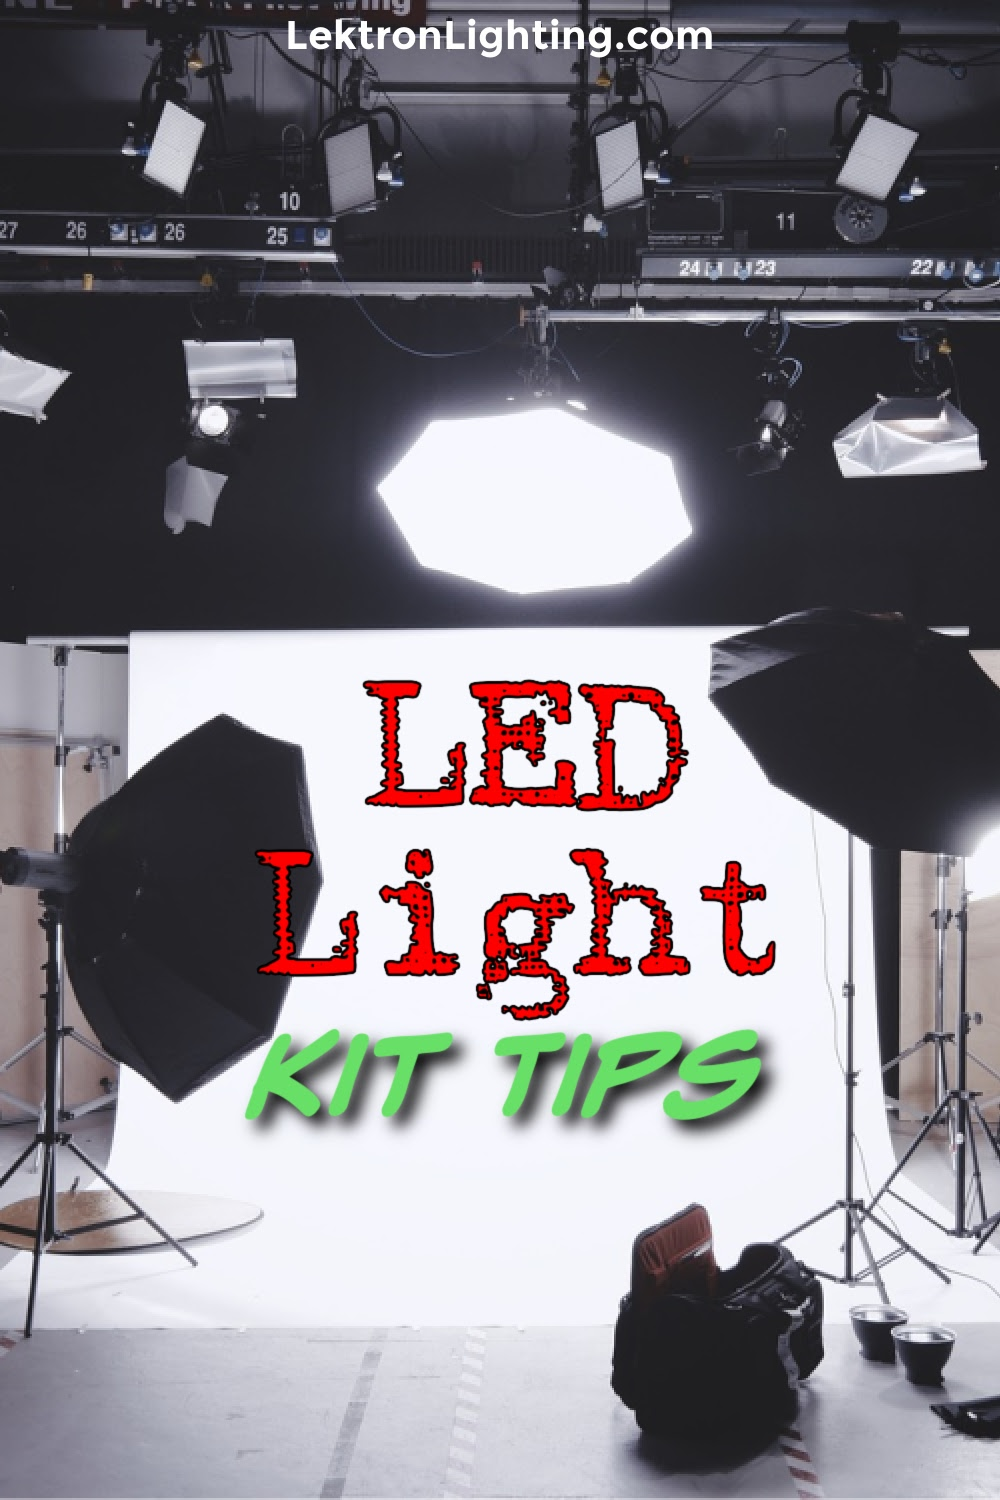 LED lighting kit tips are ways you can utilize LED lights to help improve your studio and make a splash in the world of photography or videography.